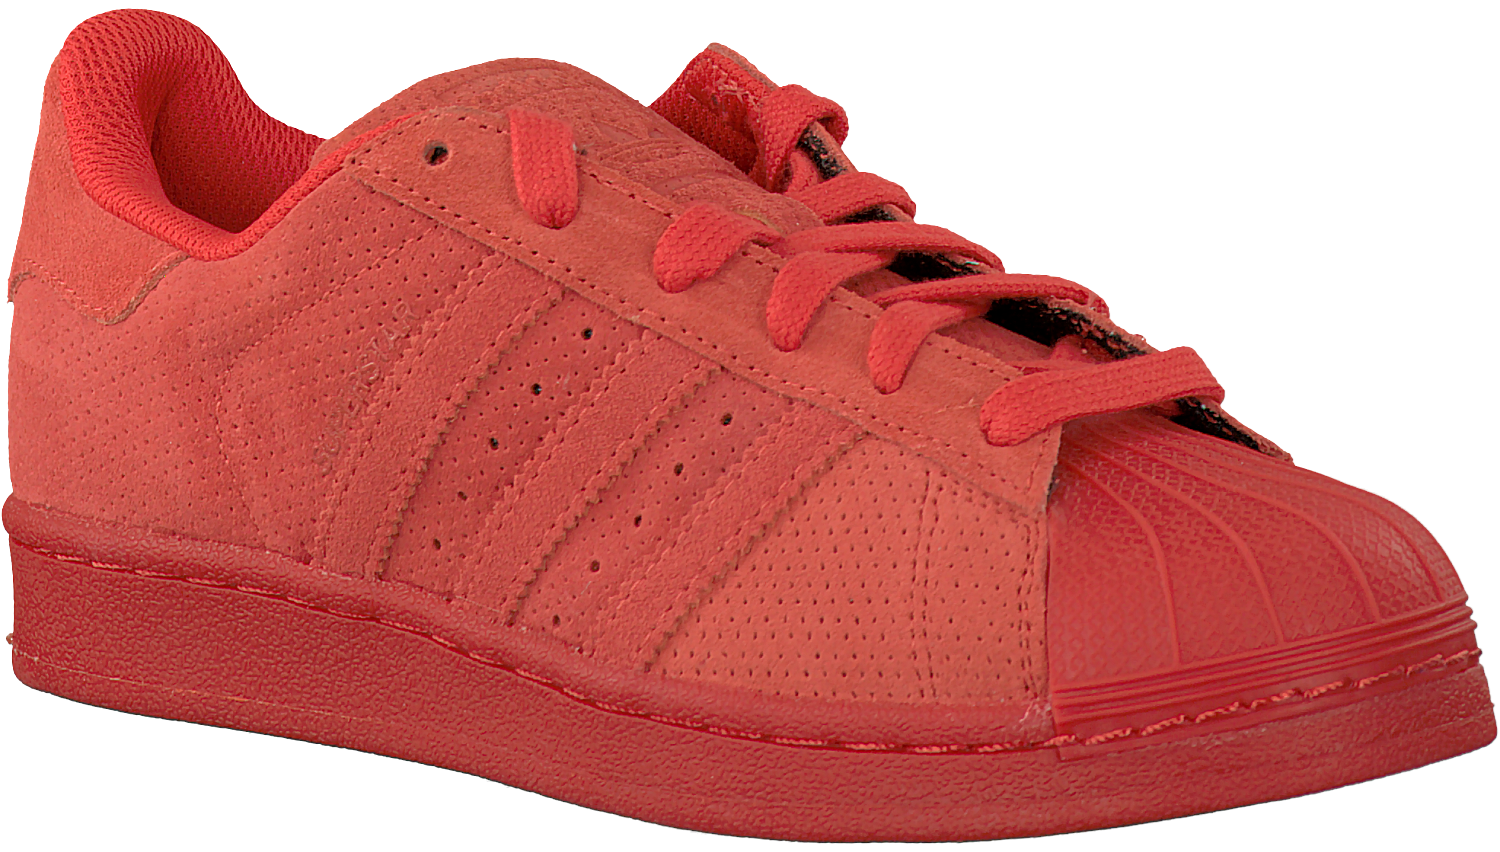 8e6e54c013f Rode ADIDAS Sneakers SUPERSTAR RT - large. Next